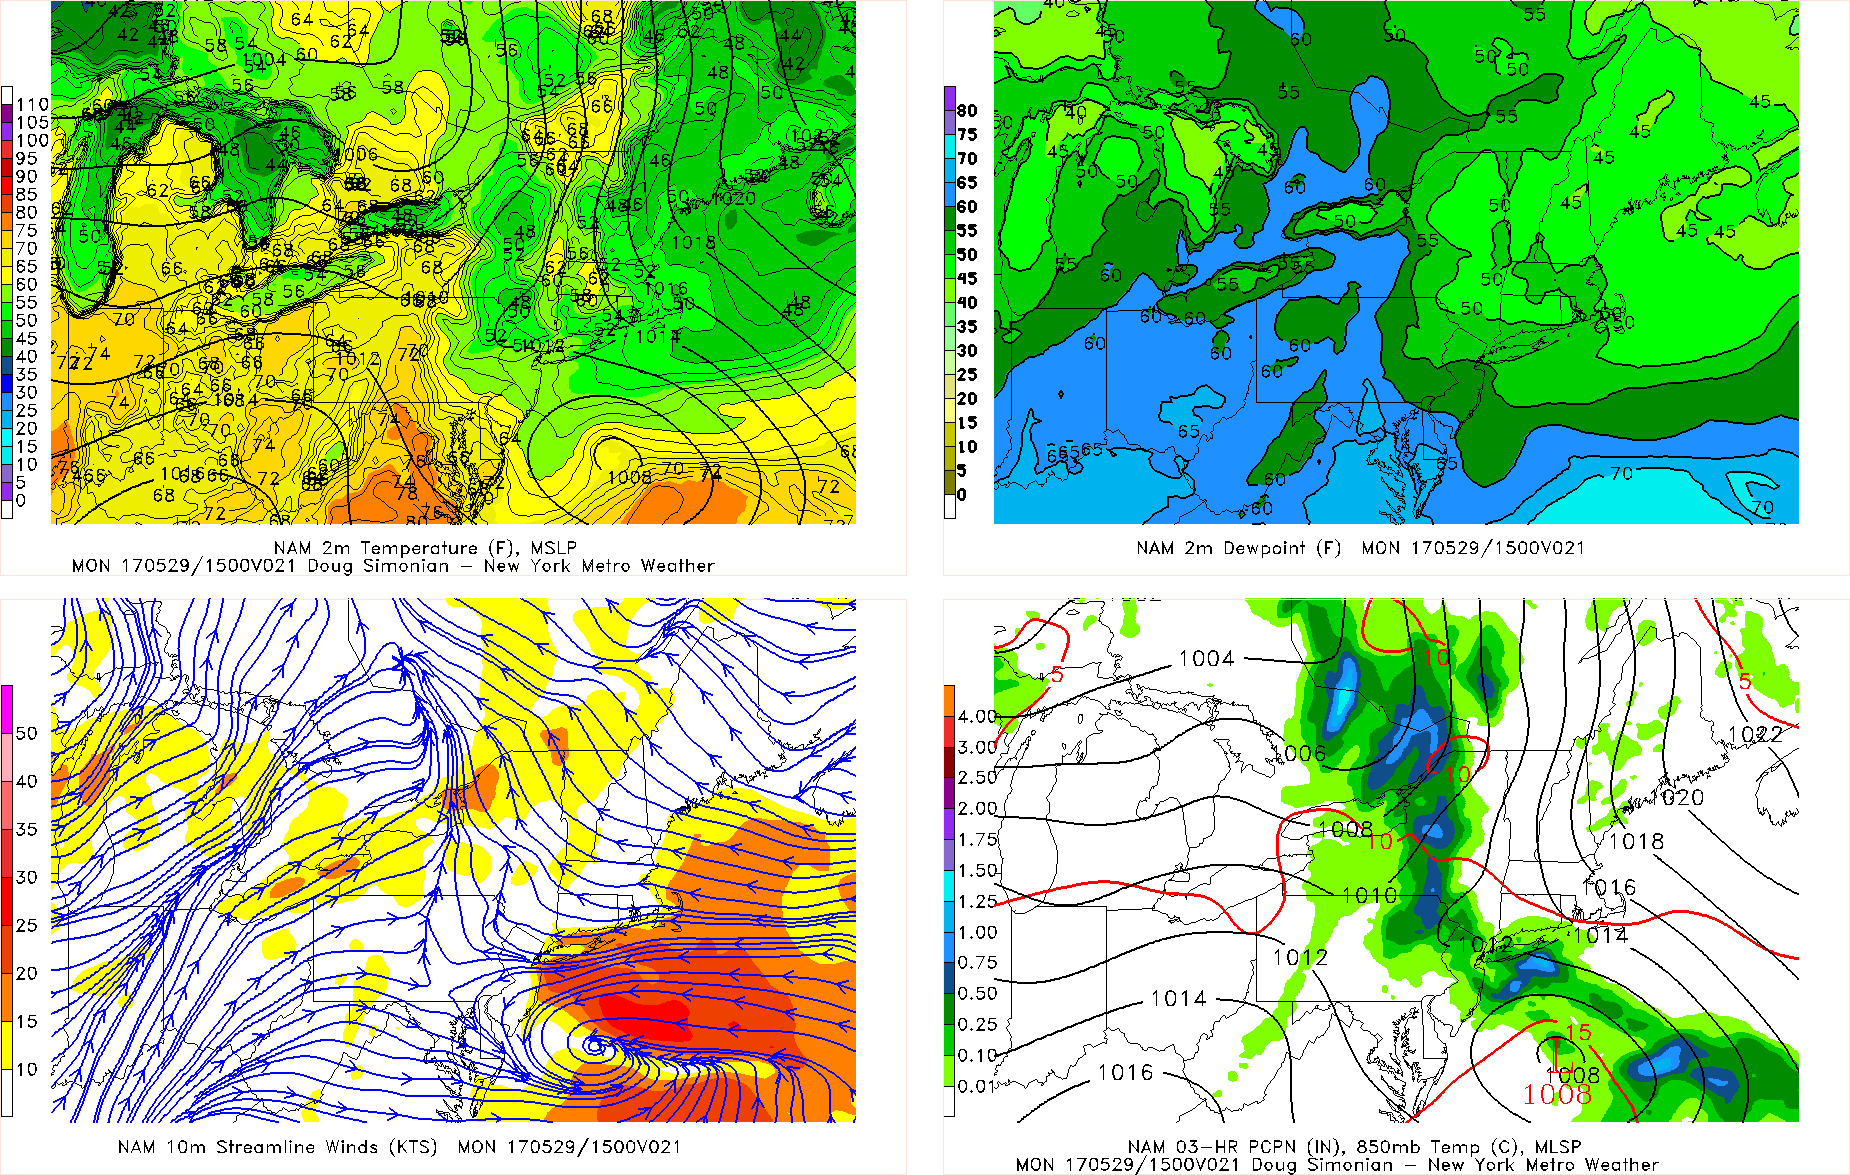 NAM model showing rain with frontal system and offshore low